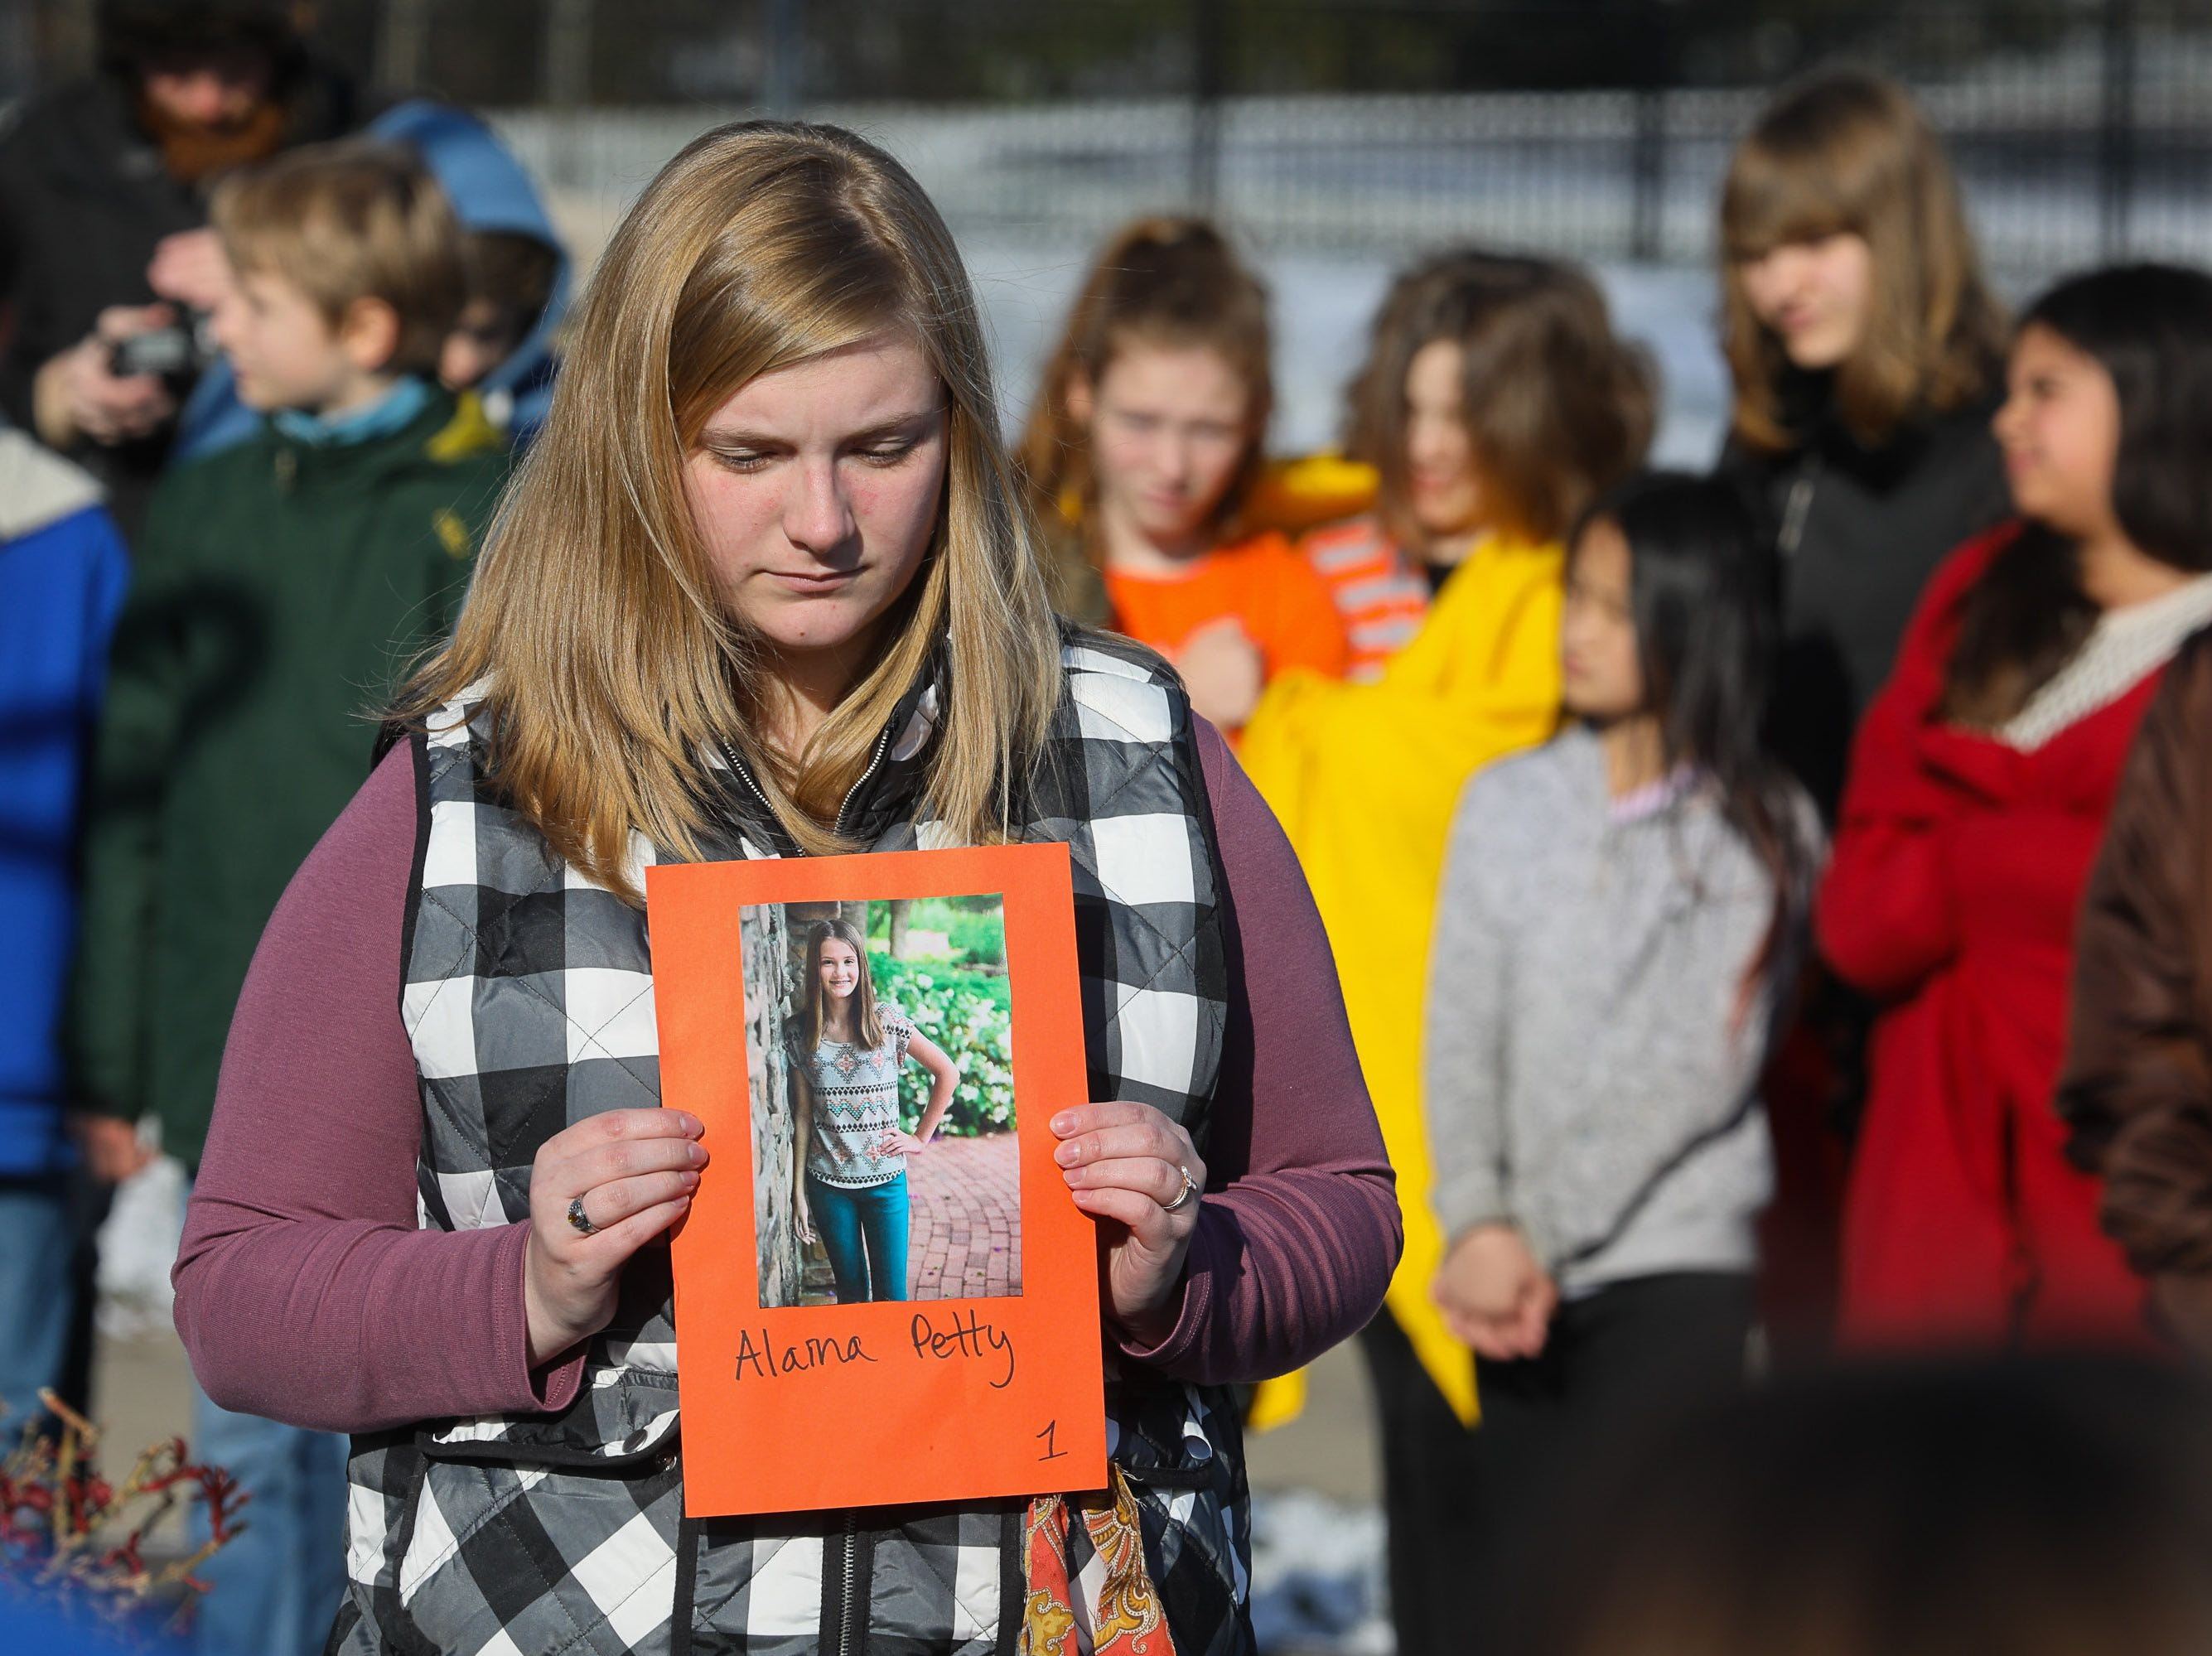 ALAINA PETTY. Kelly Golway holds a photo of Alaina Petty, one of the 17 killed at Marjory Stoneman Douglas High School, during a protest at Walden School in Louisville, Kentucky. Mar. 14, 2018